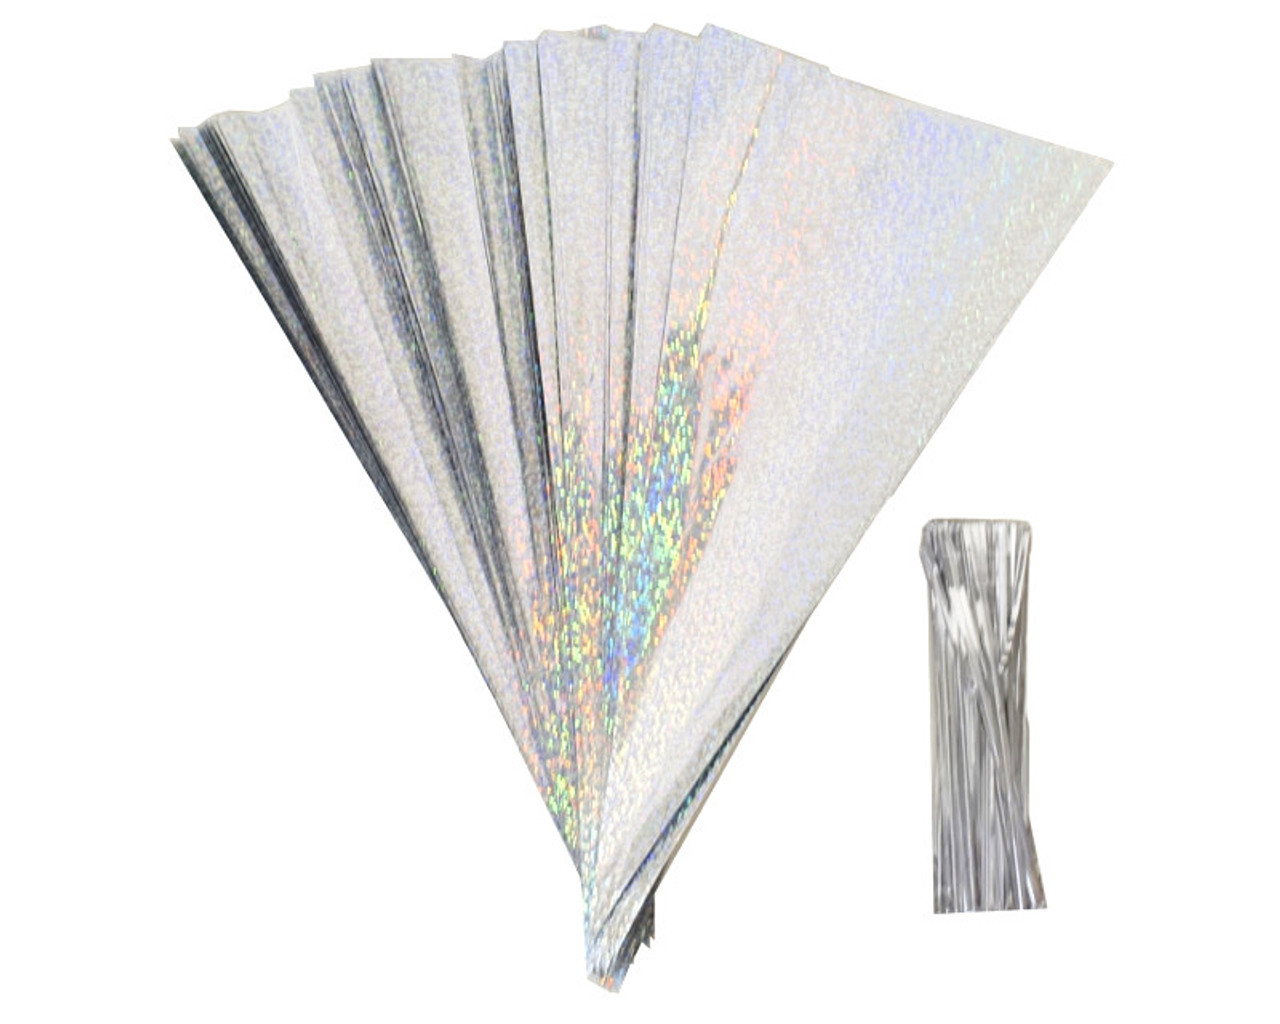 HRX Package 350 Yard Green Metallic Twist Ties 1 Roll Shiny Decorative Foil Ties for Candy Cookies Cello Bag Christmas